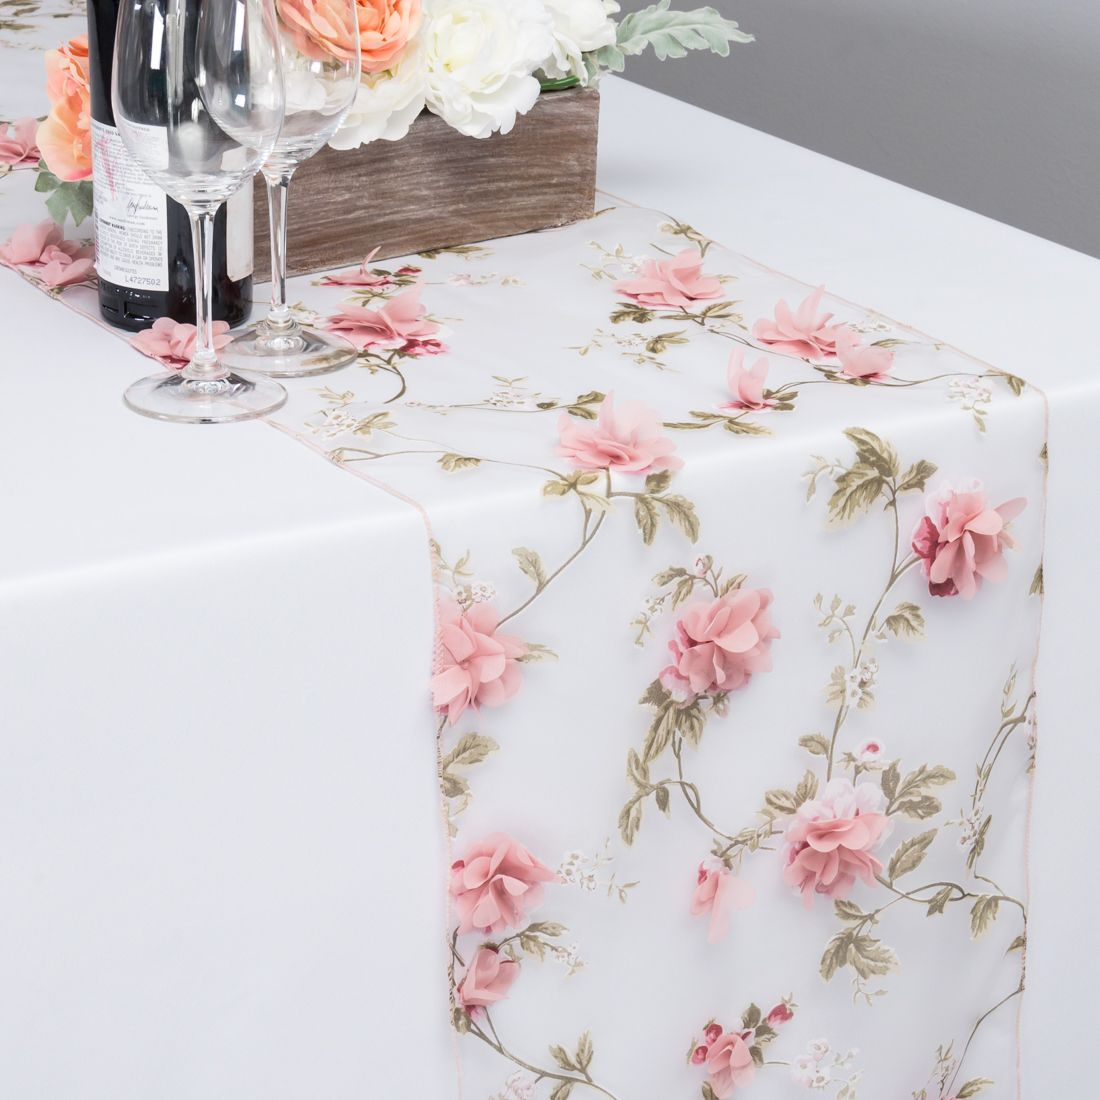 14 X 108 In Sheer With Pink Roses Table Runner Tea Party Bridal Shower Decorations Tea Party Bridal Shower Garden Bridal Shower Themes